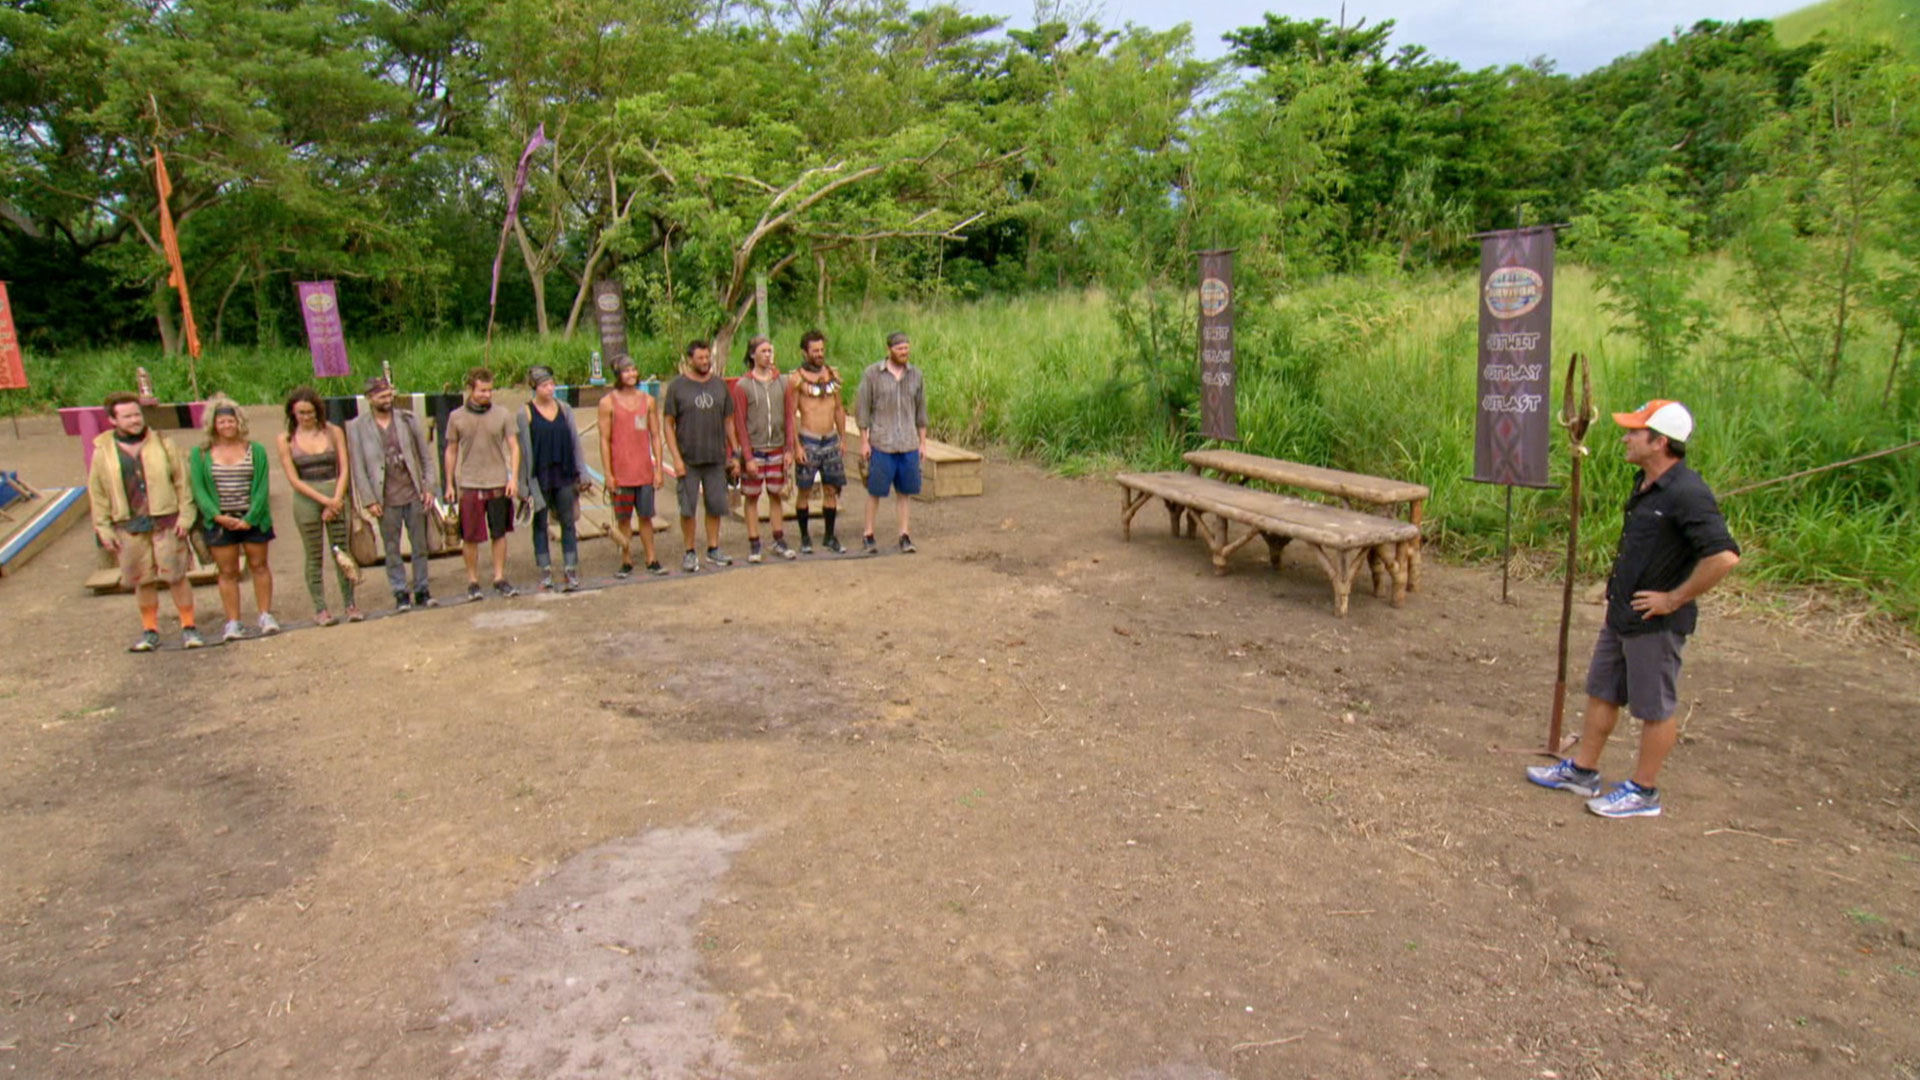 Ken will hand over his Individual Immunity Necklace before the next challenge starts.